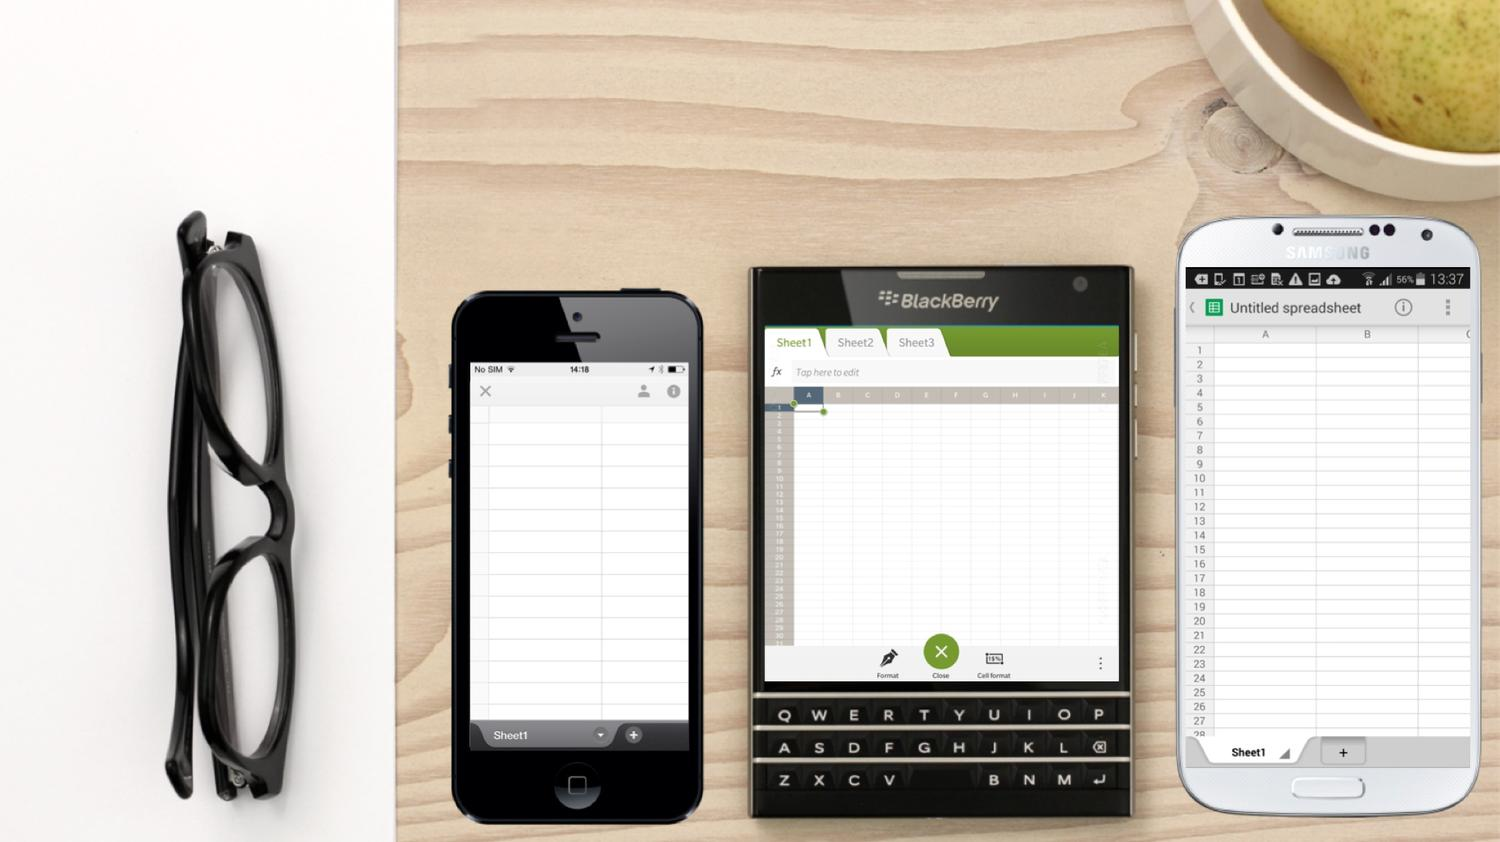 Why Aren't Blackberry Bankrupt Yet?